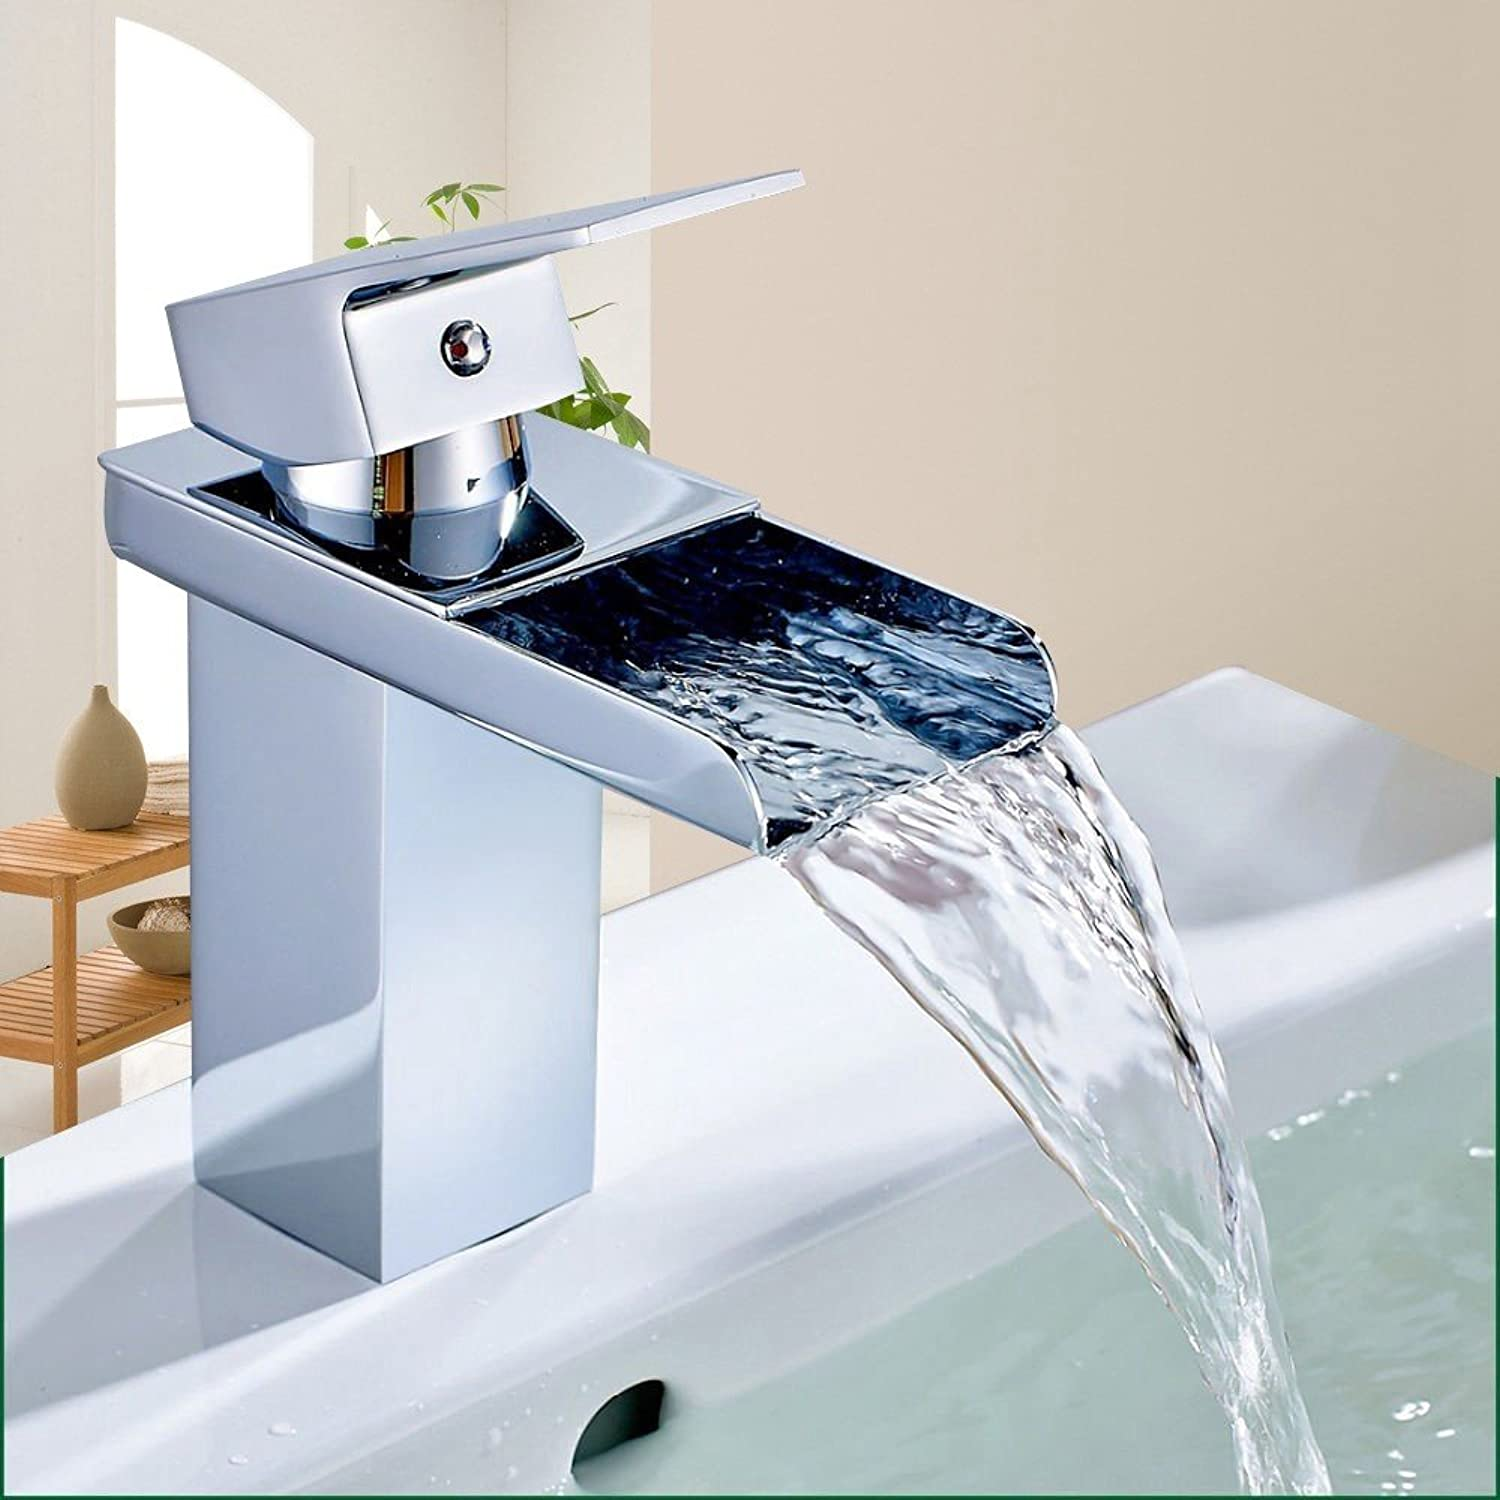 Hardware bathroom copper waterfall faucet hot and cold basin faucet Modern Style Wide Waterfall Spout Single Handle Hot And Cold Device Chrome Finish Bathroom Basin Sink Mixer Tap Faucet